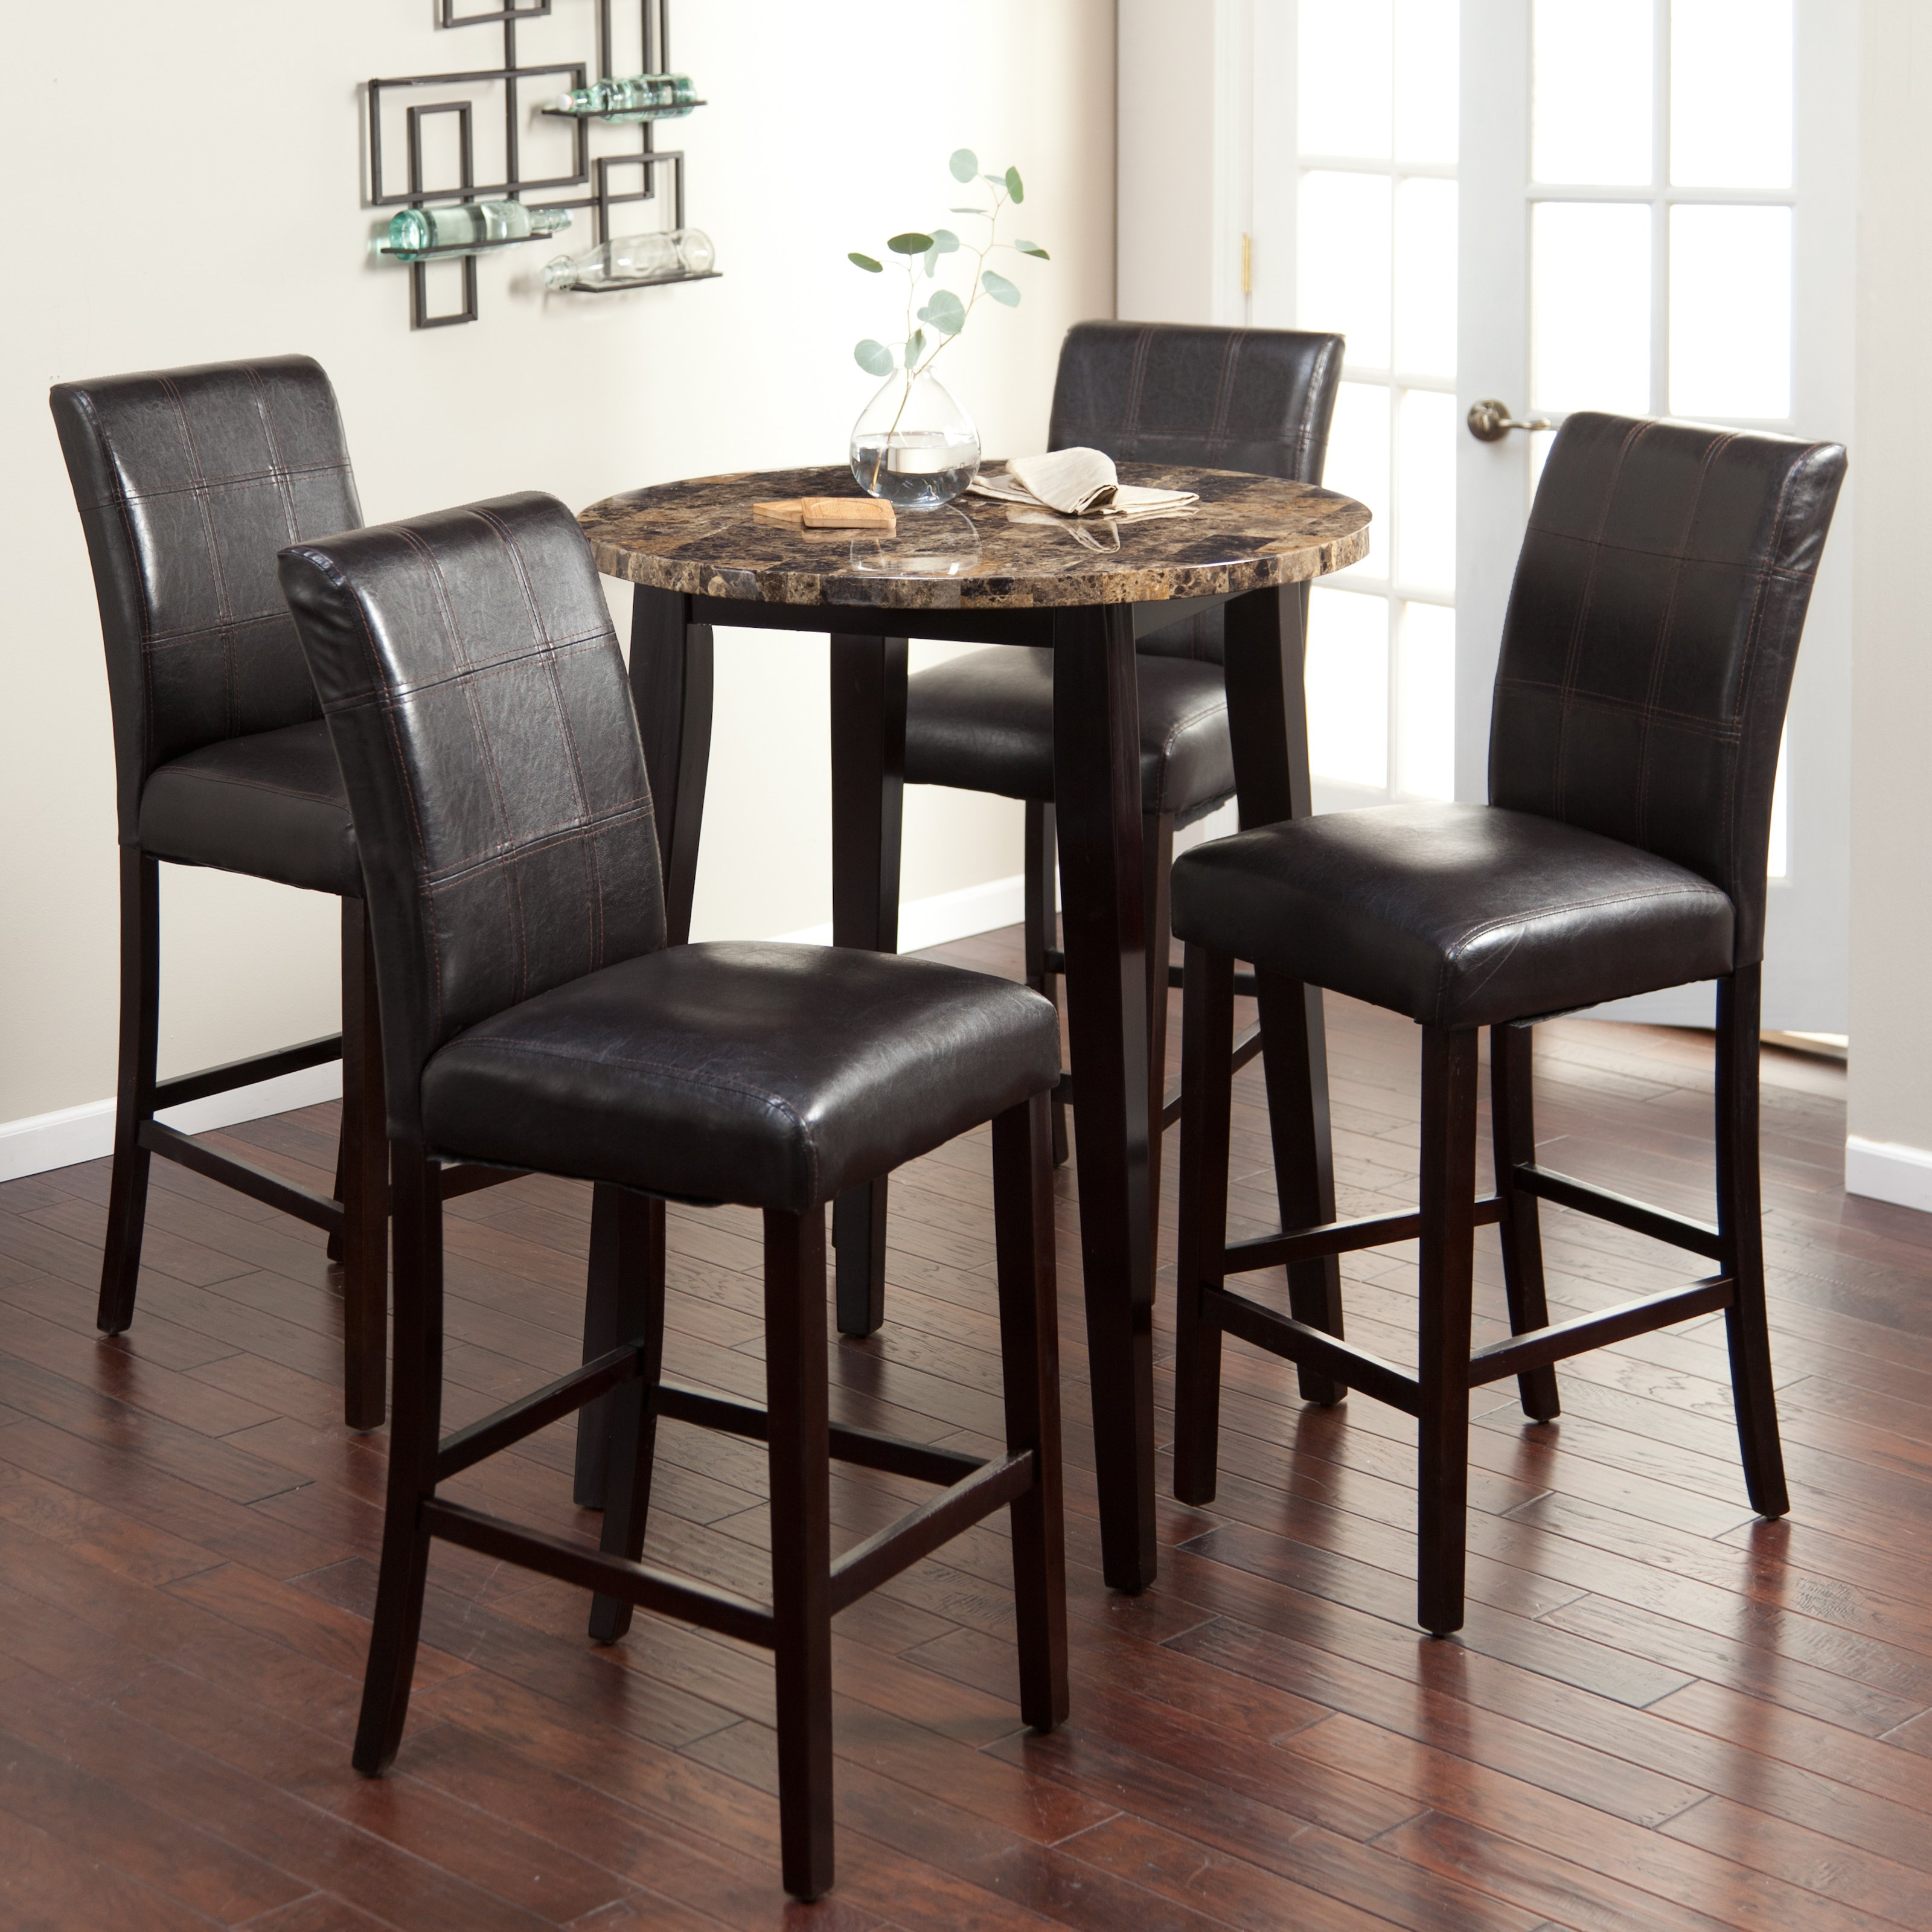 Stylish pub tables and chairs for you